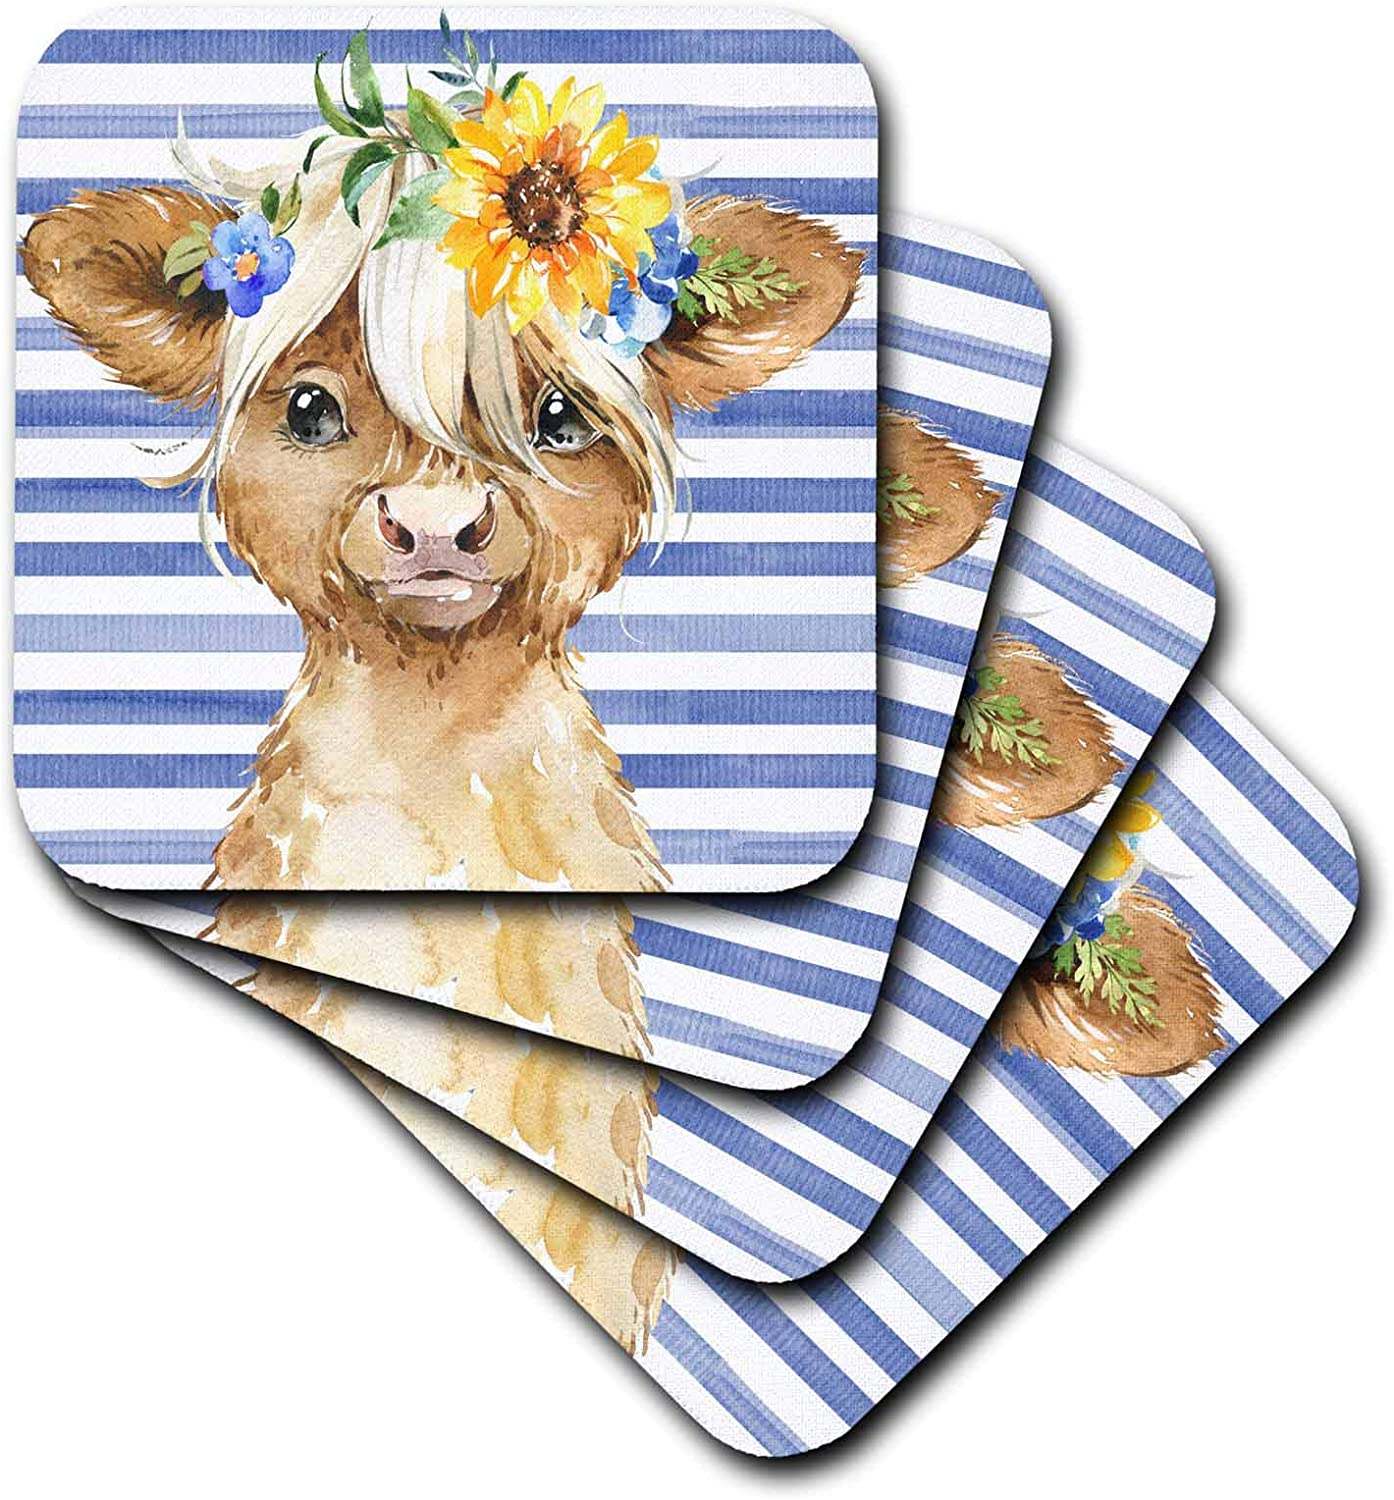 3dRose Cute Image Of Watercolor Sunflower Highland Cow Illustration - Coasters (cst_335966_1)